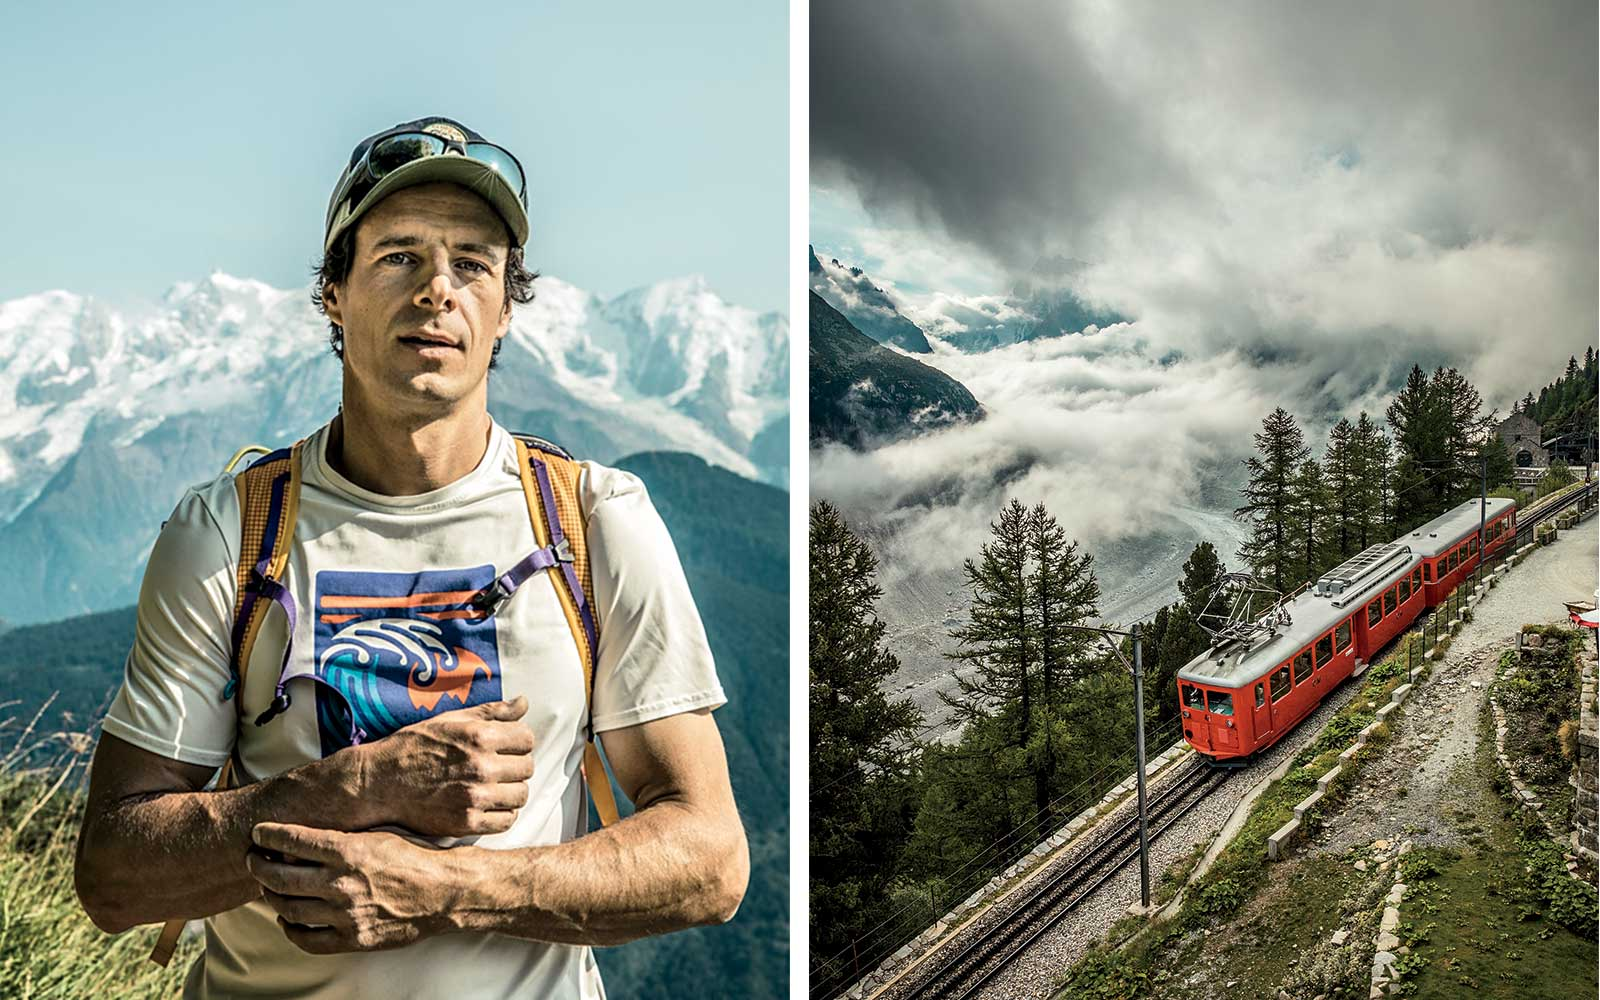 Mountain climbing guide in Chamonix; train to Mer de Glace